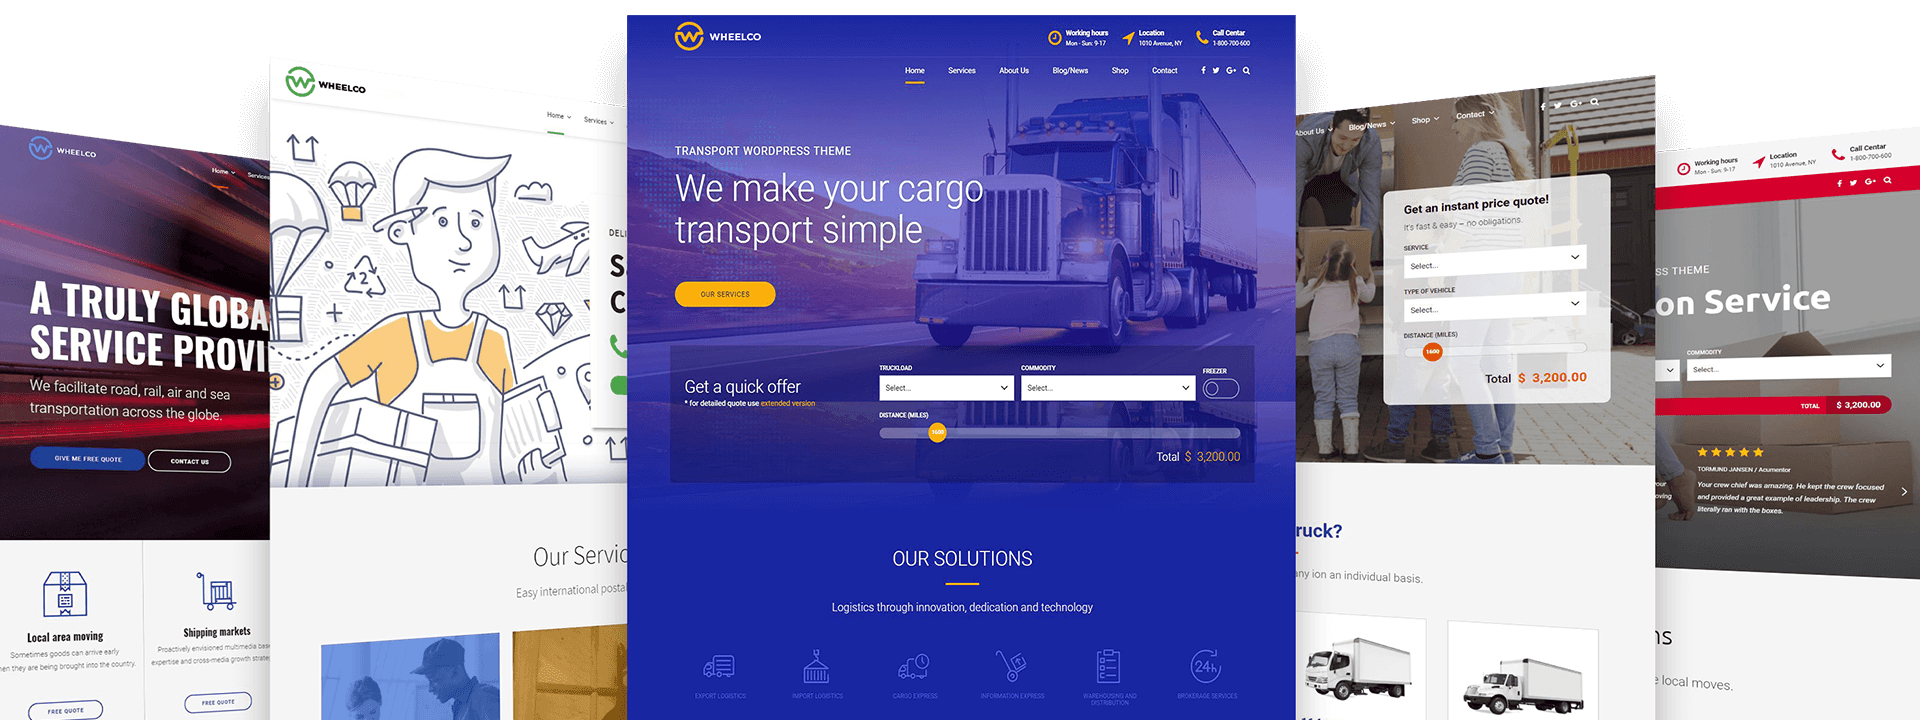 https://locofreight.net/wp-content/uploads/2017/10/sample_pages.png